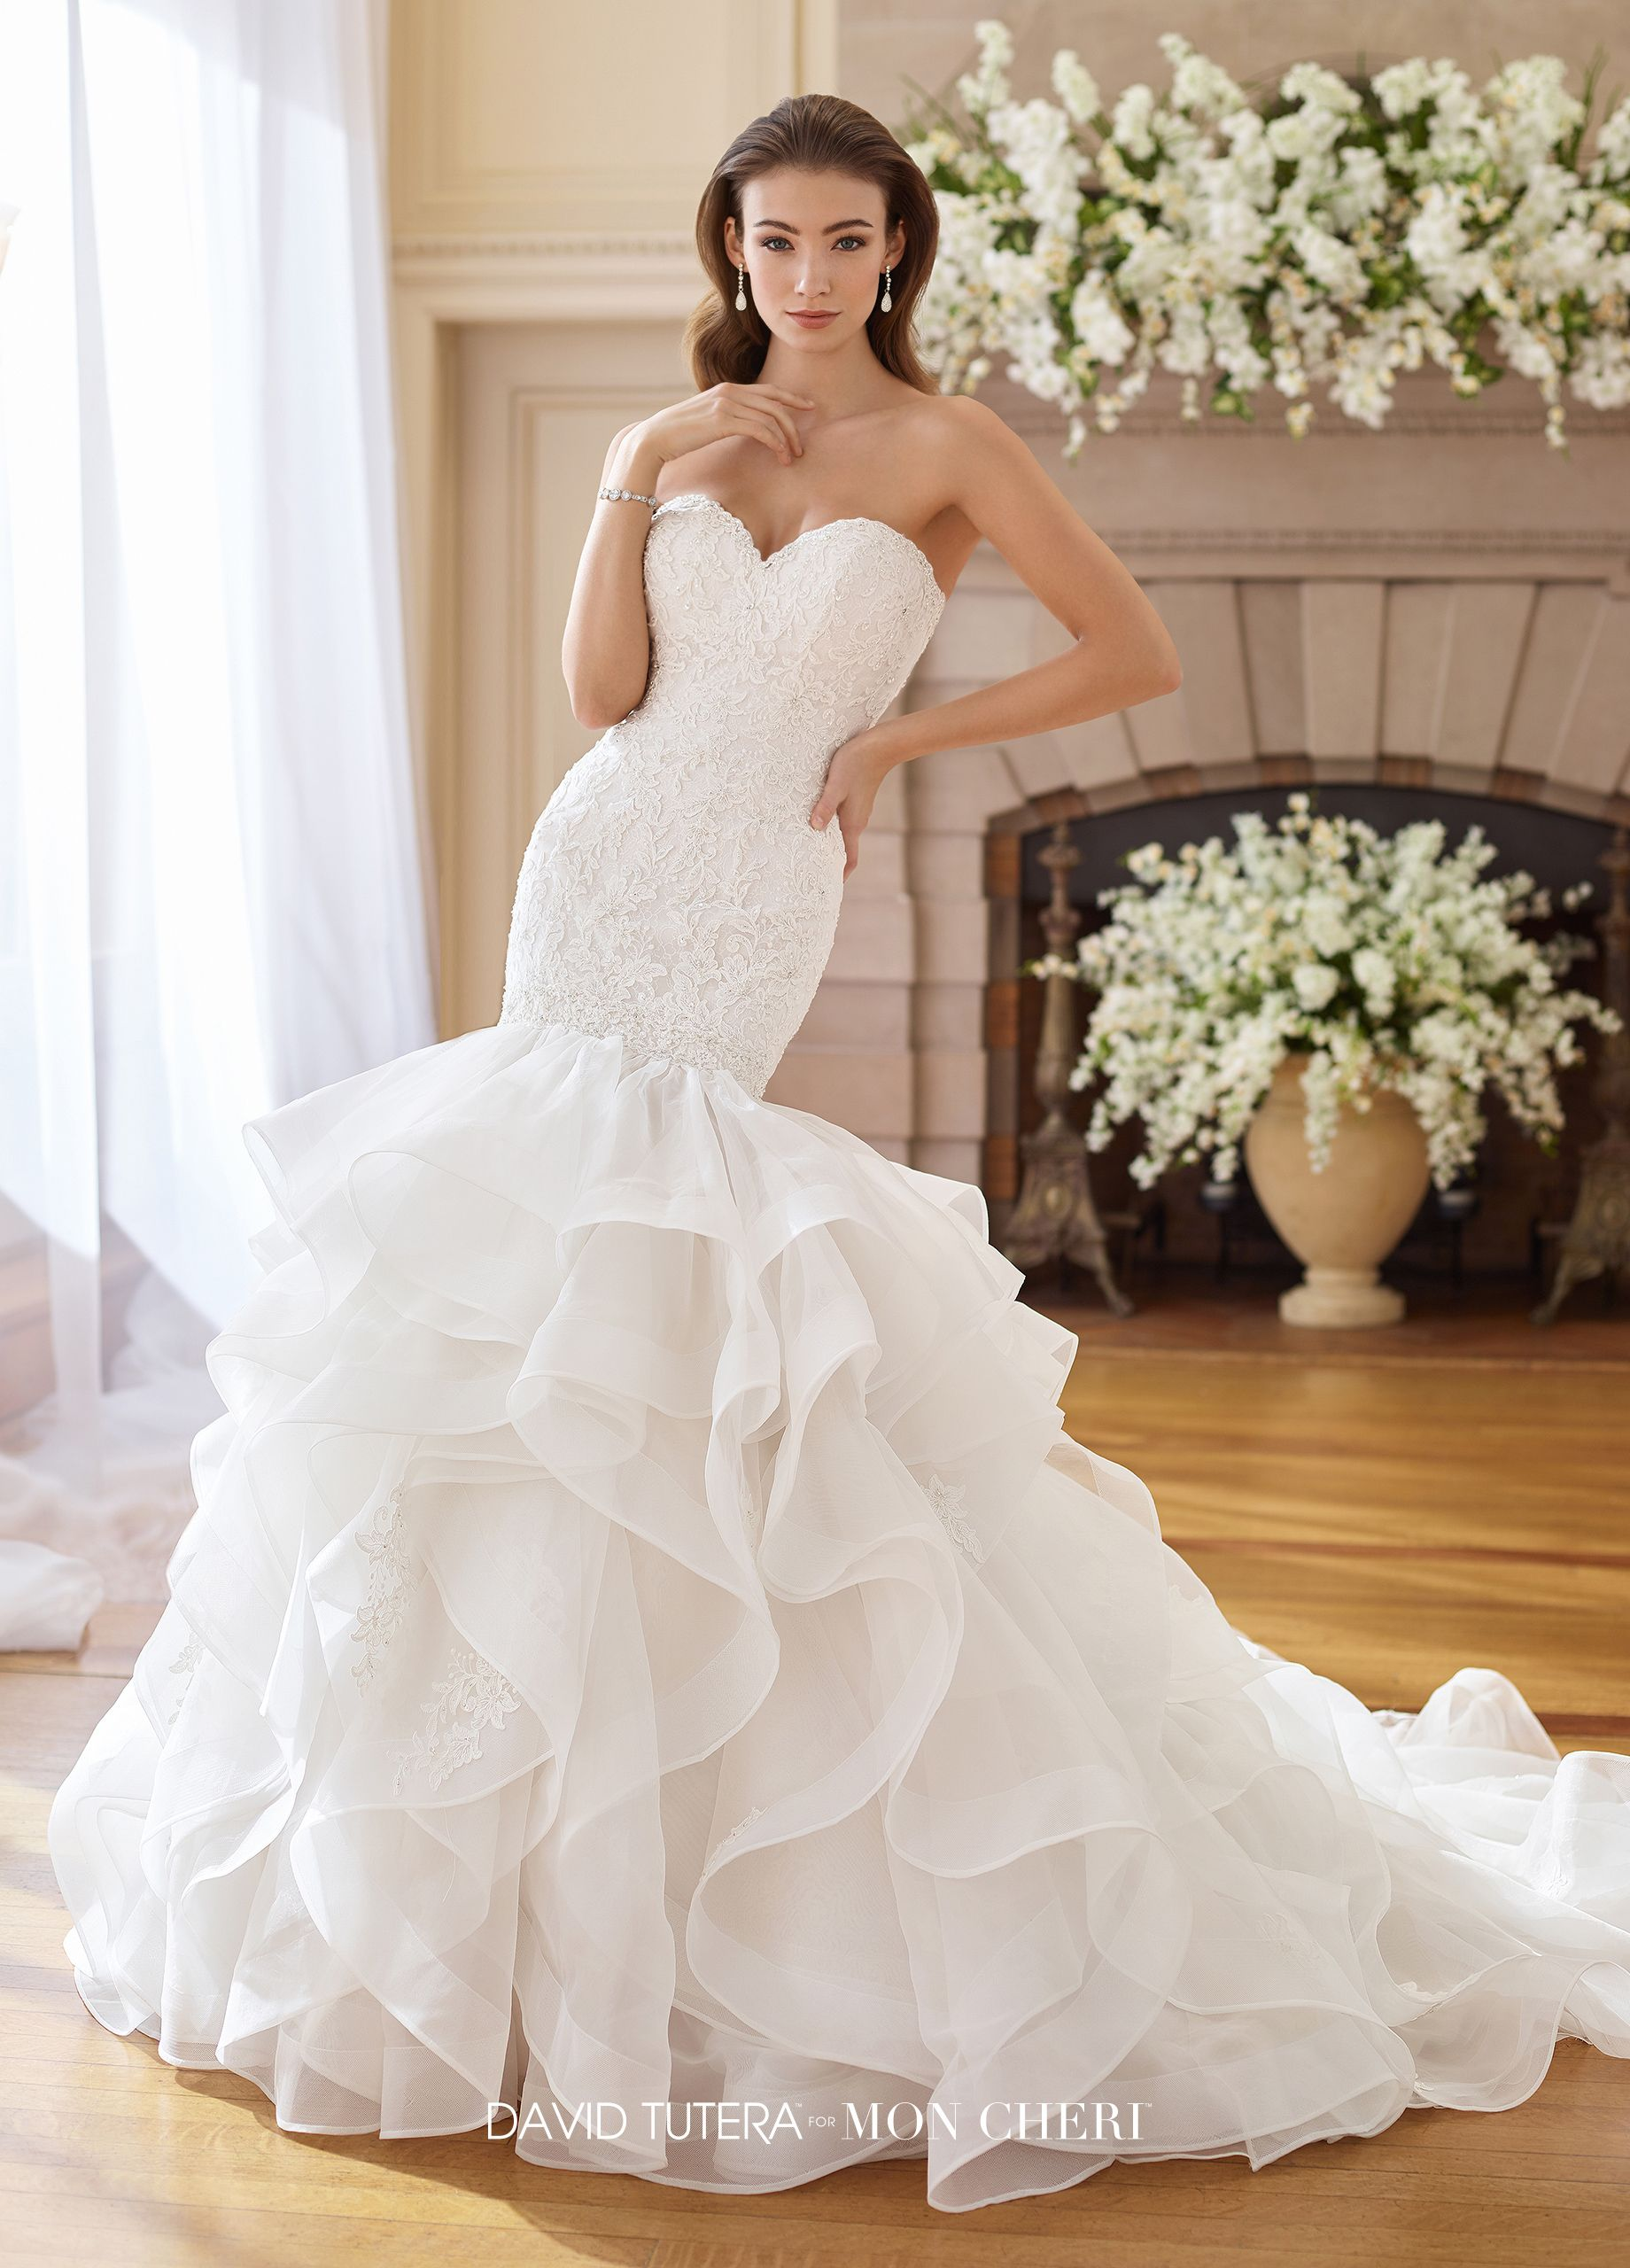 16426d49166c 217227 Inez - Strapless organza trumpet gown with sweetheart neckline,  hand-beaded lace bodice